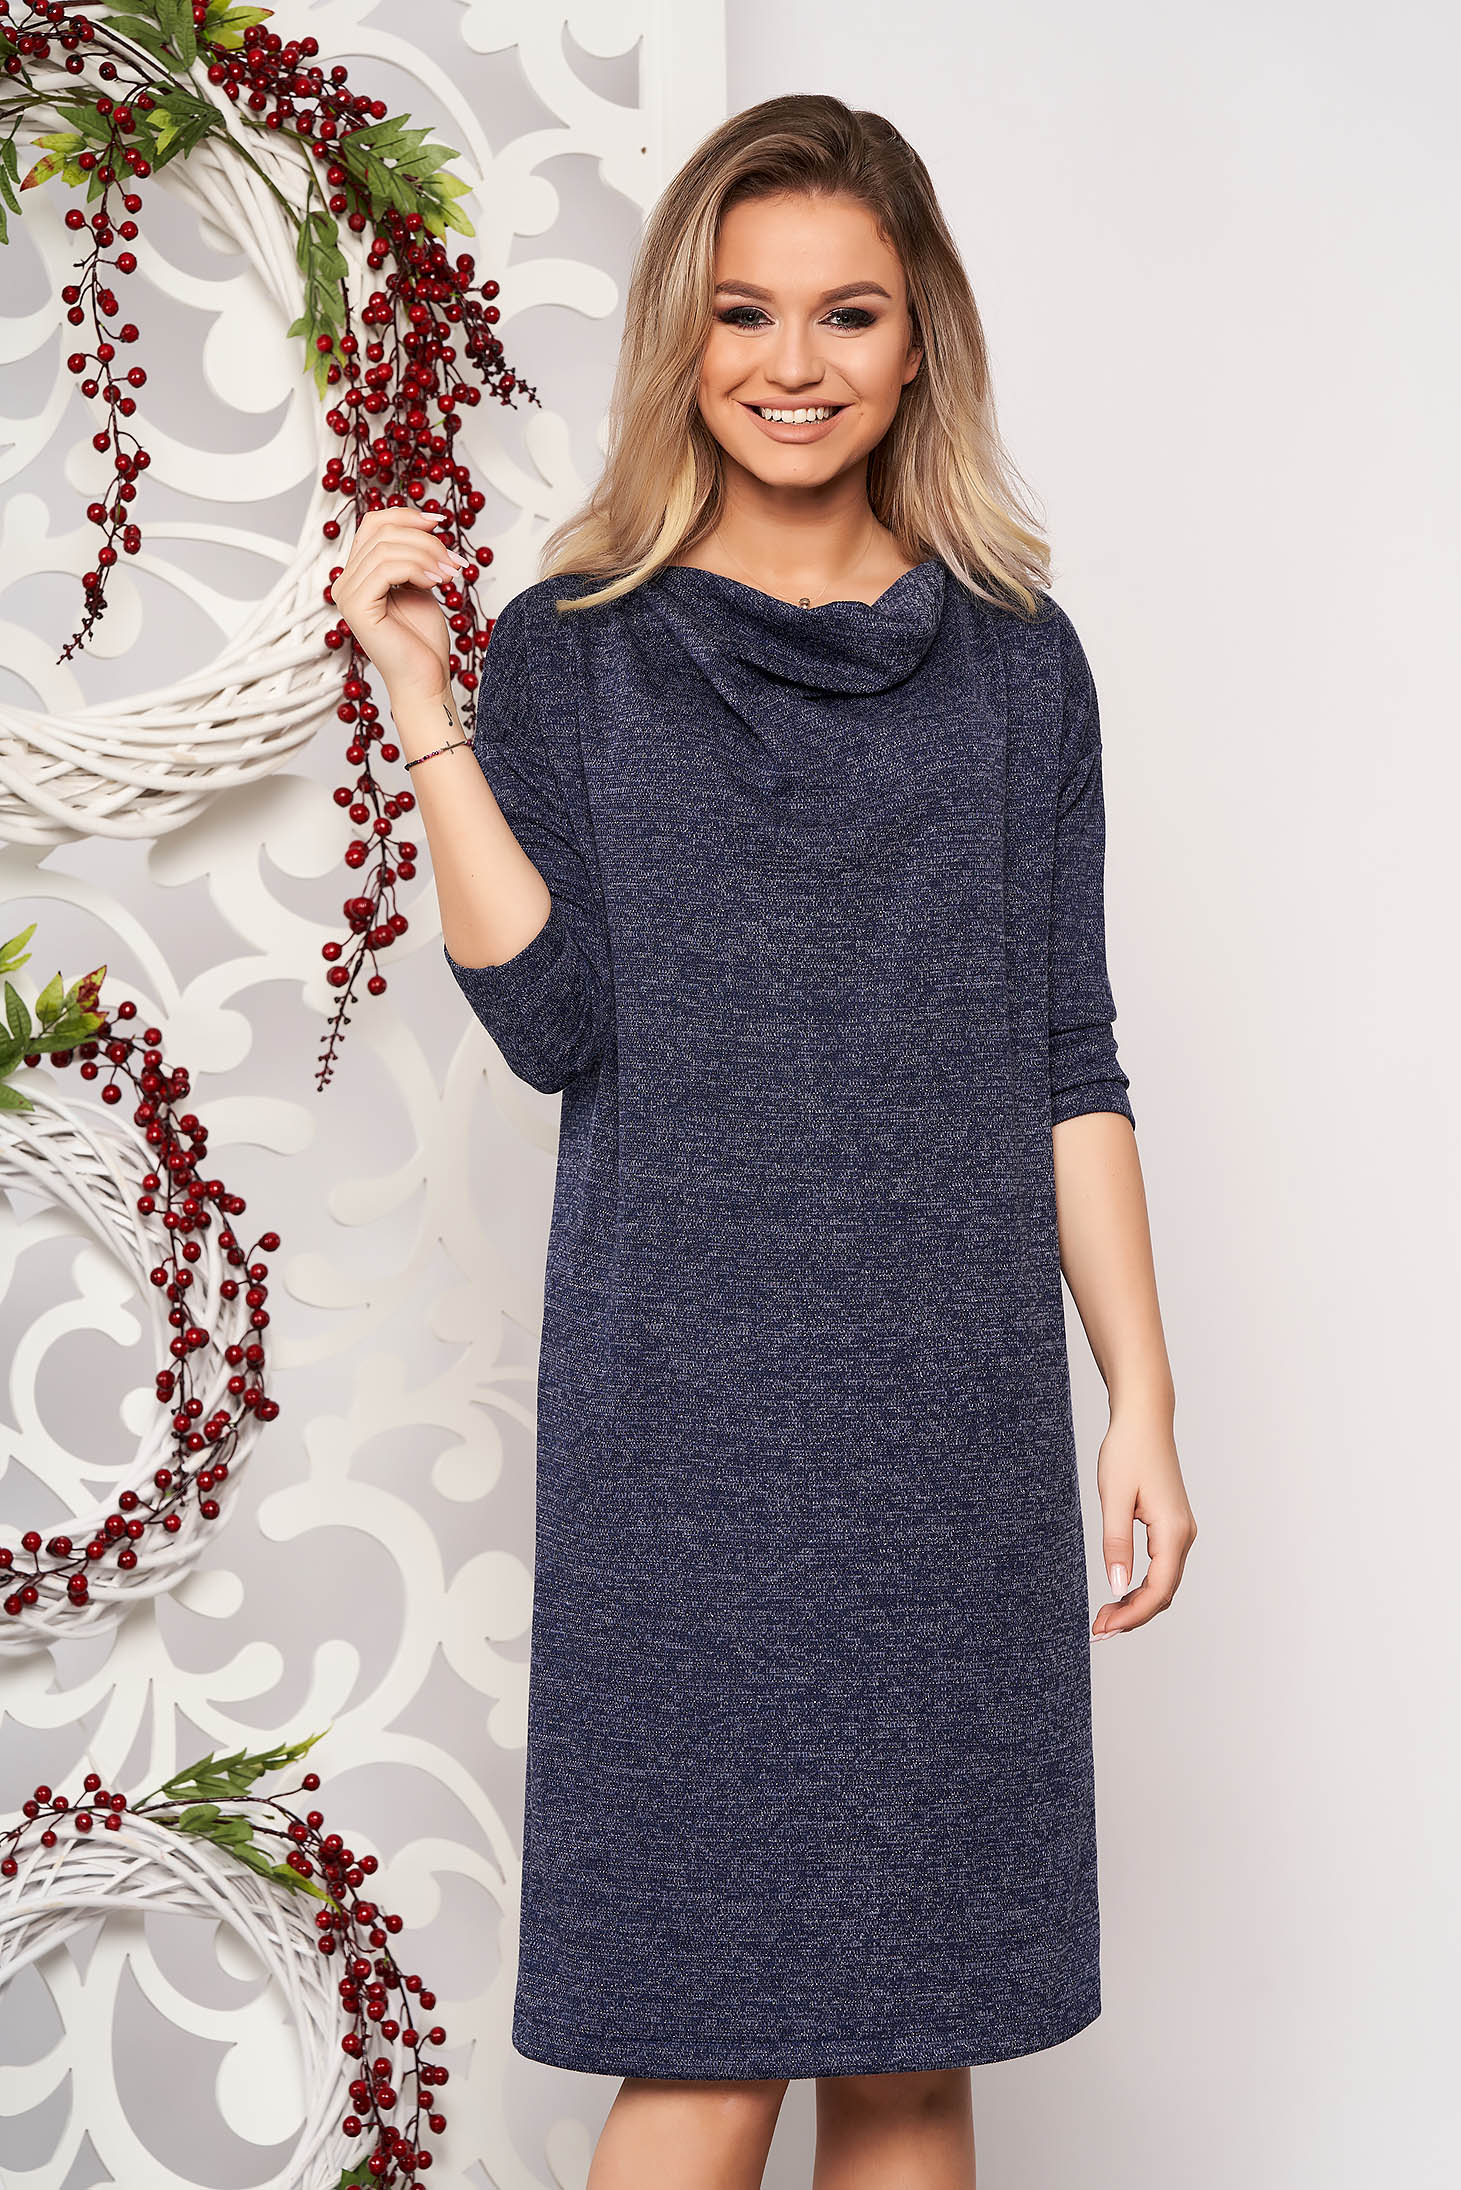 StarShinerS dress darkblue knitted fabric with easy cut